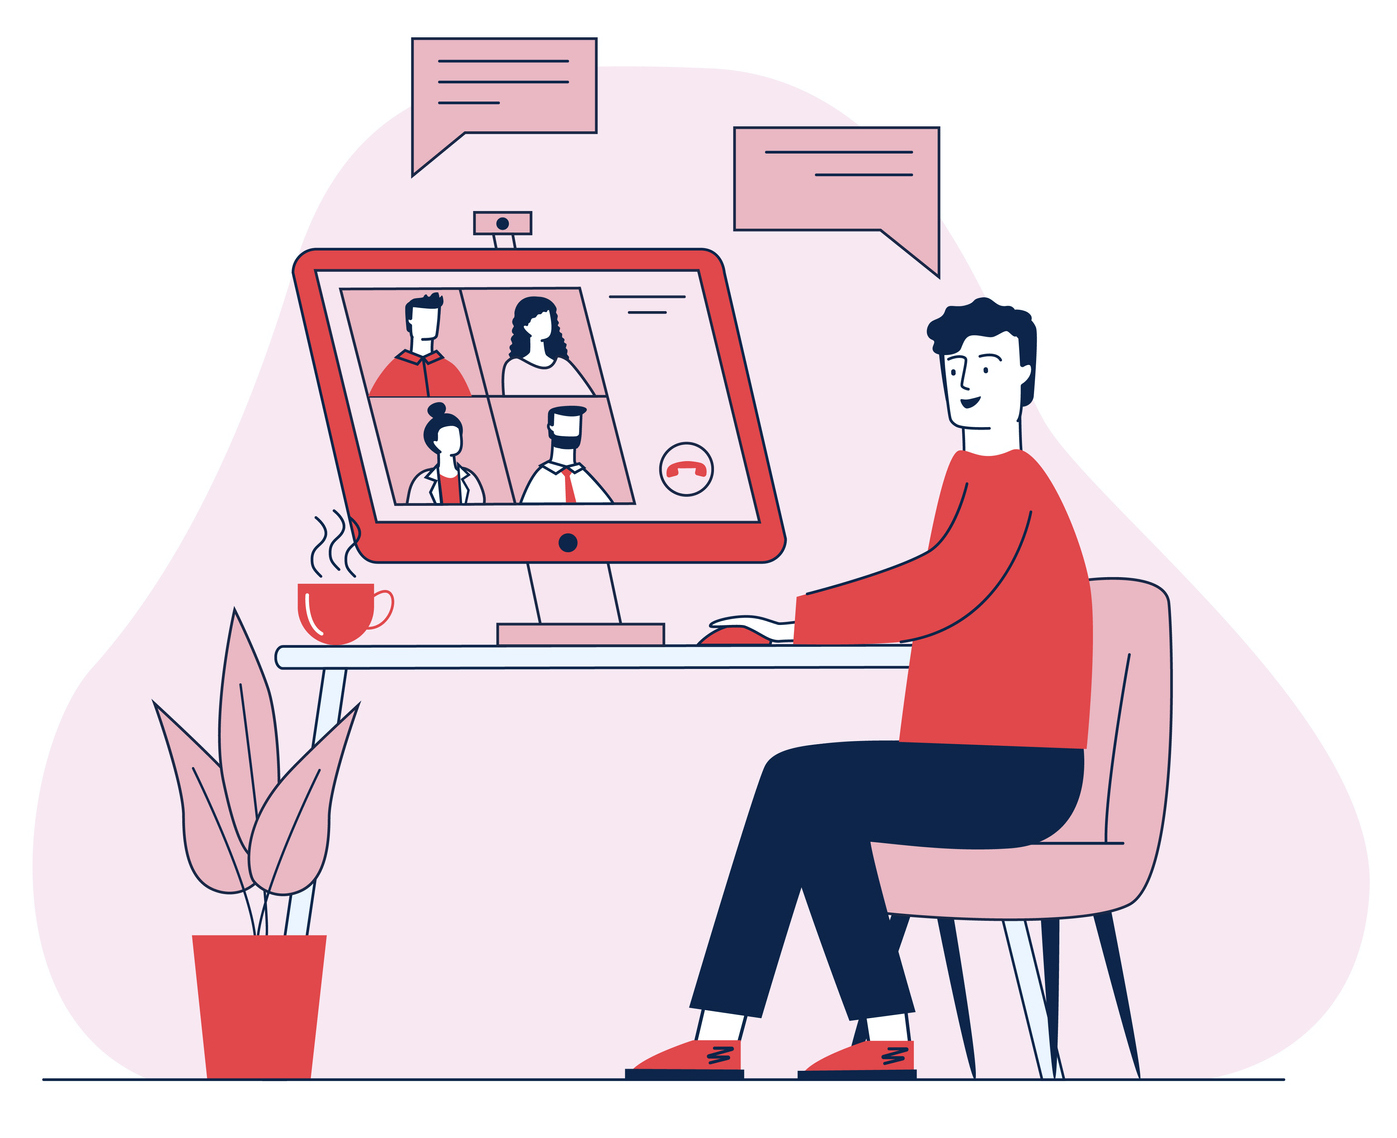 Illustration of person sitting at desk